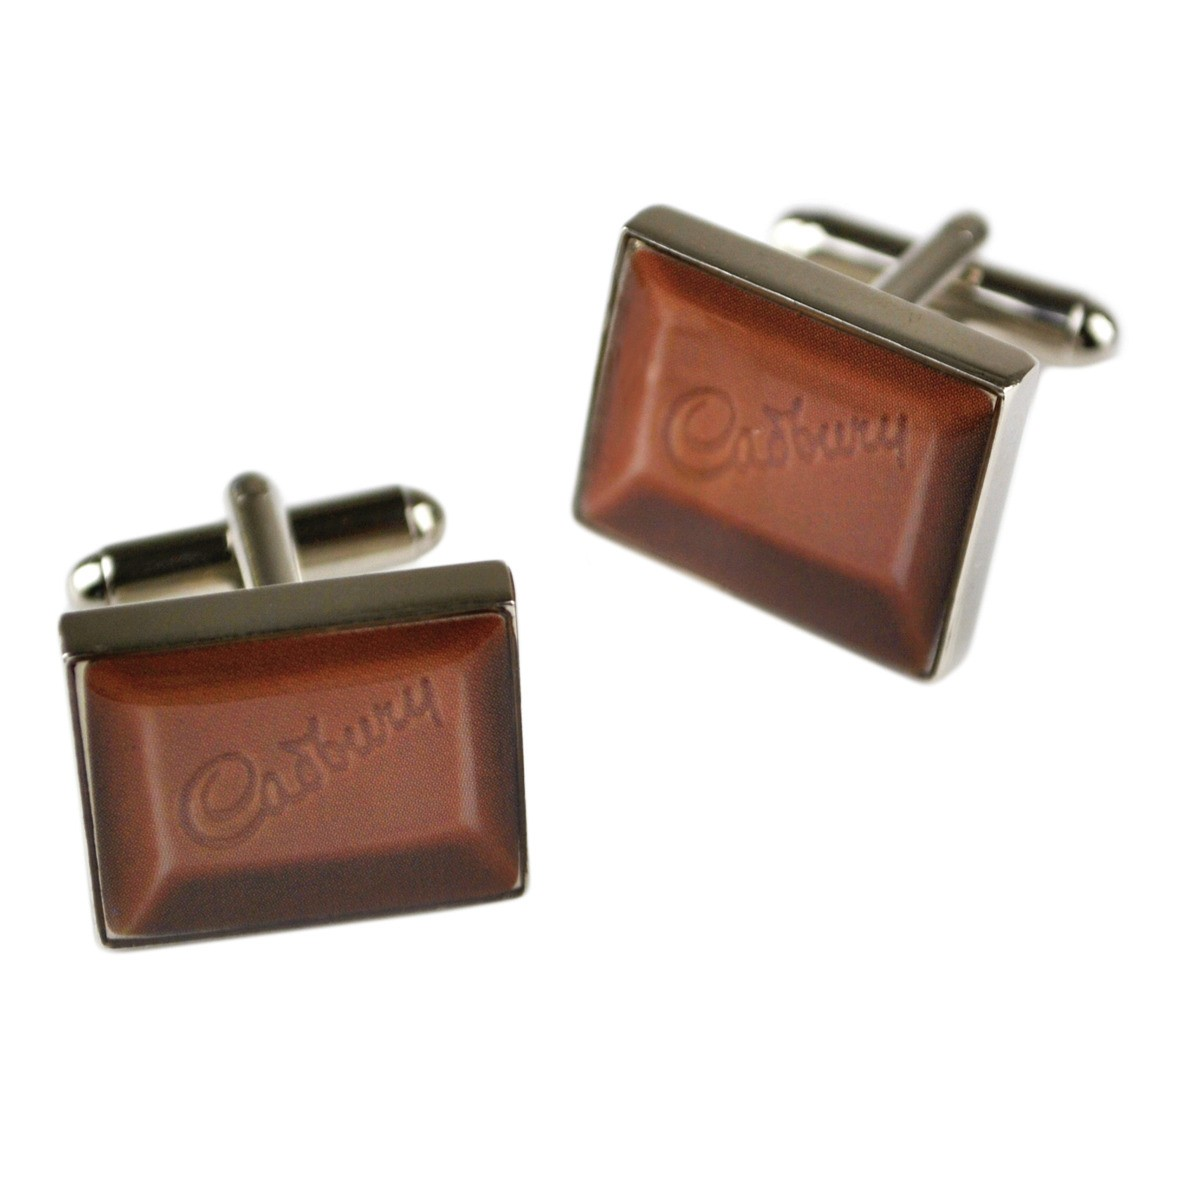 NEW CADBURYS CHOCOLATE CHUNK CUFFLINKS STEEL RETRO ENAMEL VINTAGE KITSCH IN BOX